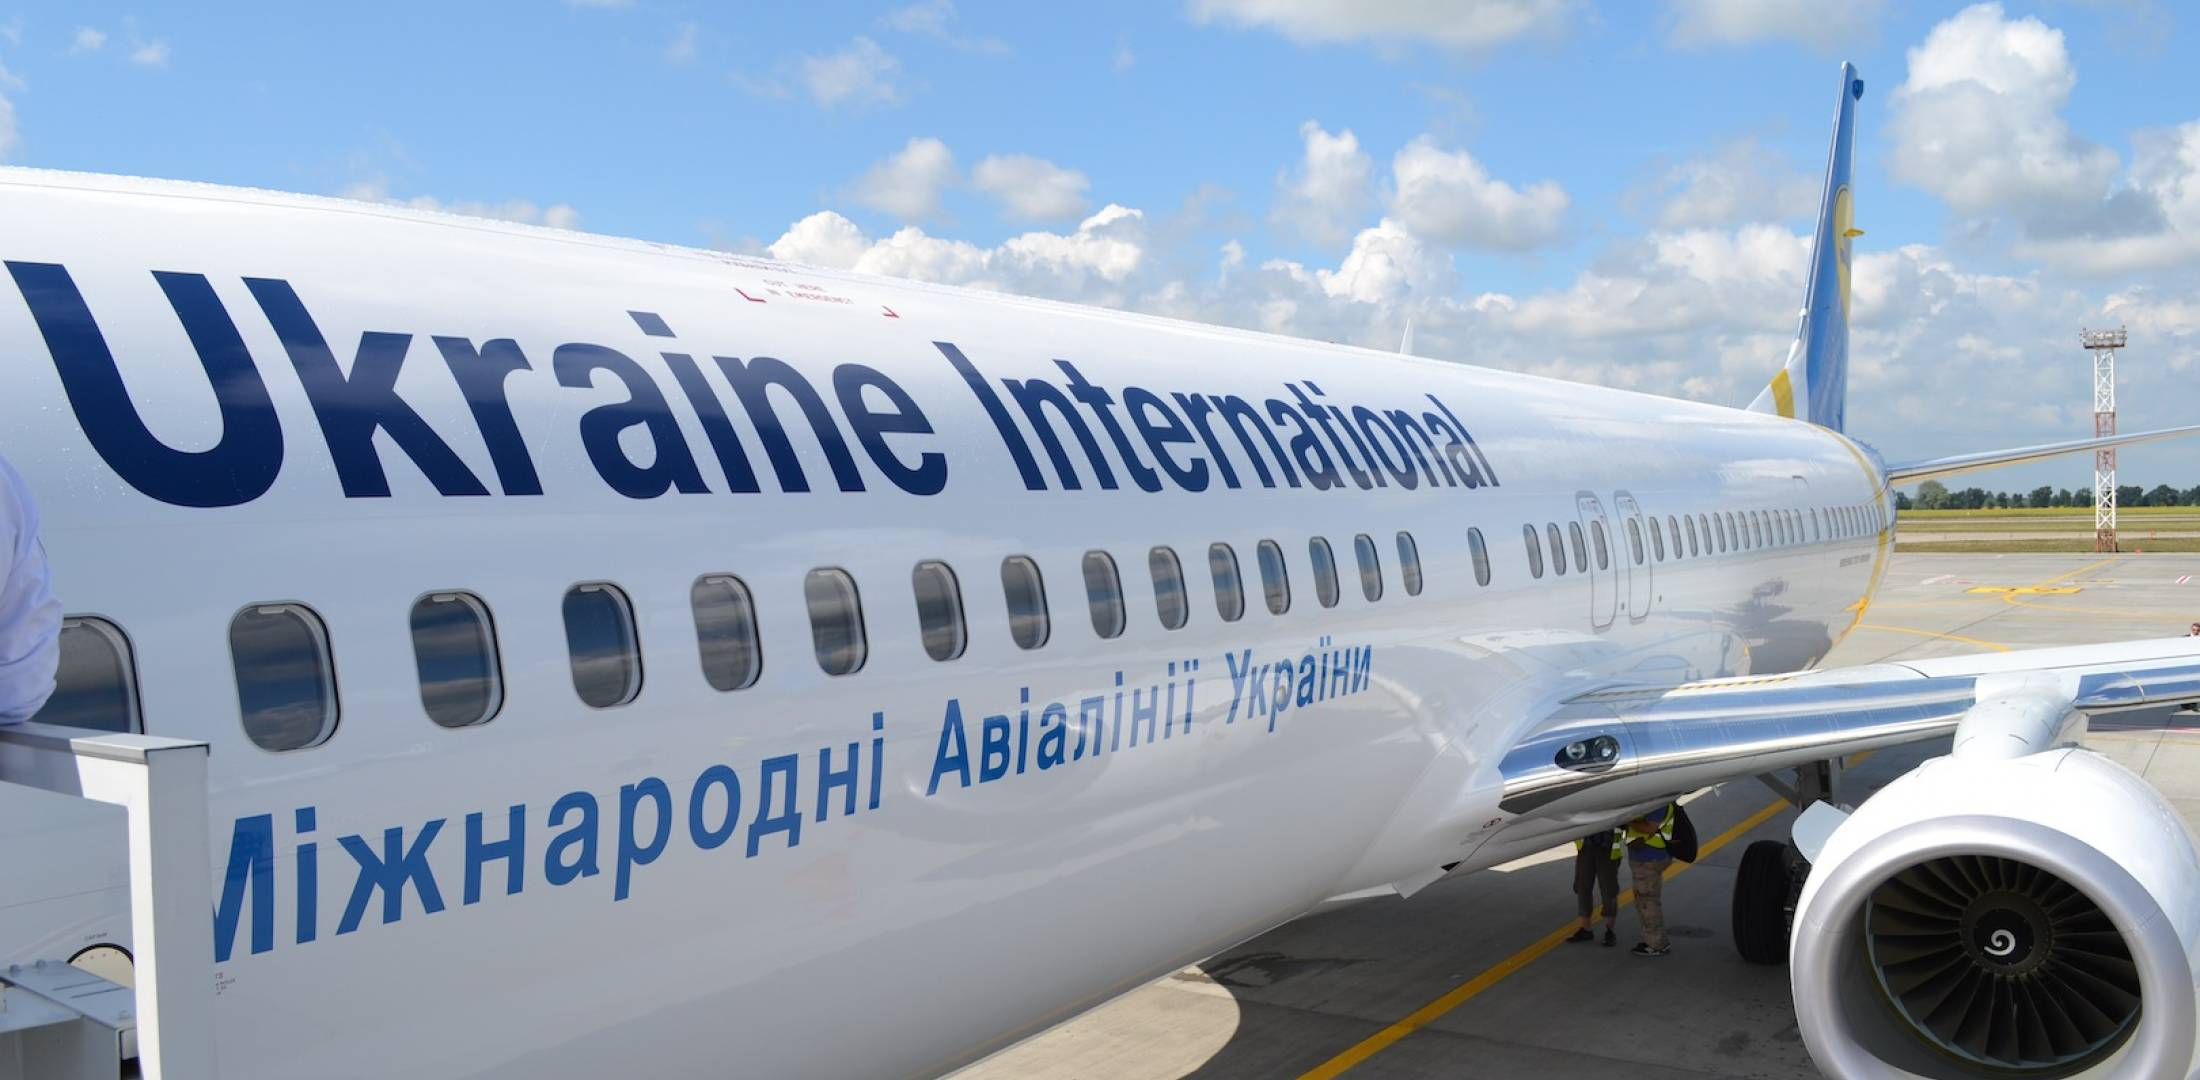 Ukrainian airlines barred from russian airspace air transport news ukraine international airlines can no longer fly its boeing 767s over russia from kiev to several points east photo ukraine international airlines publicscrutiny Gallery